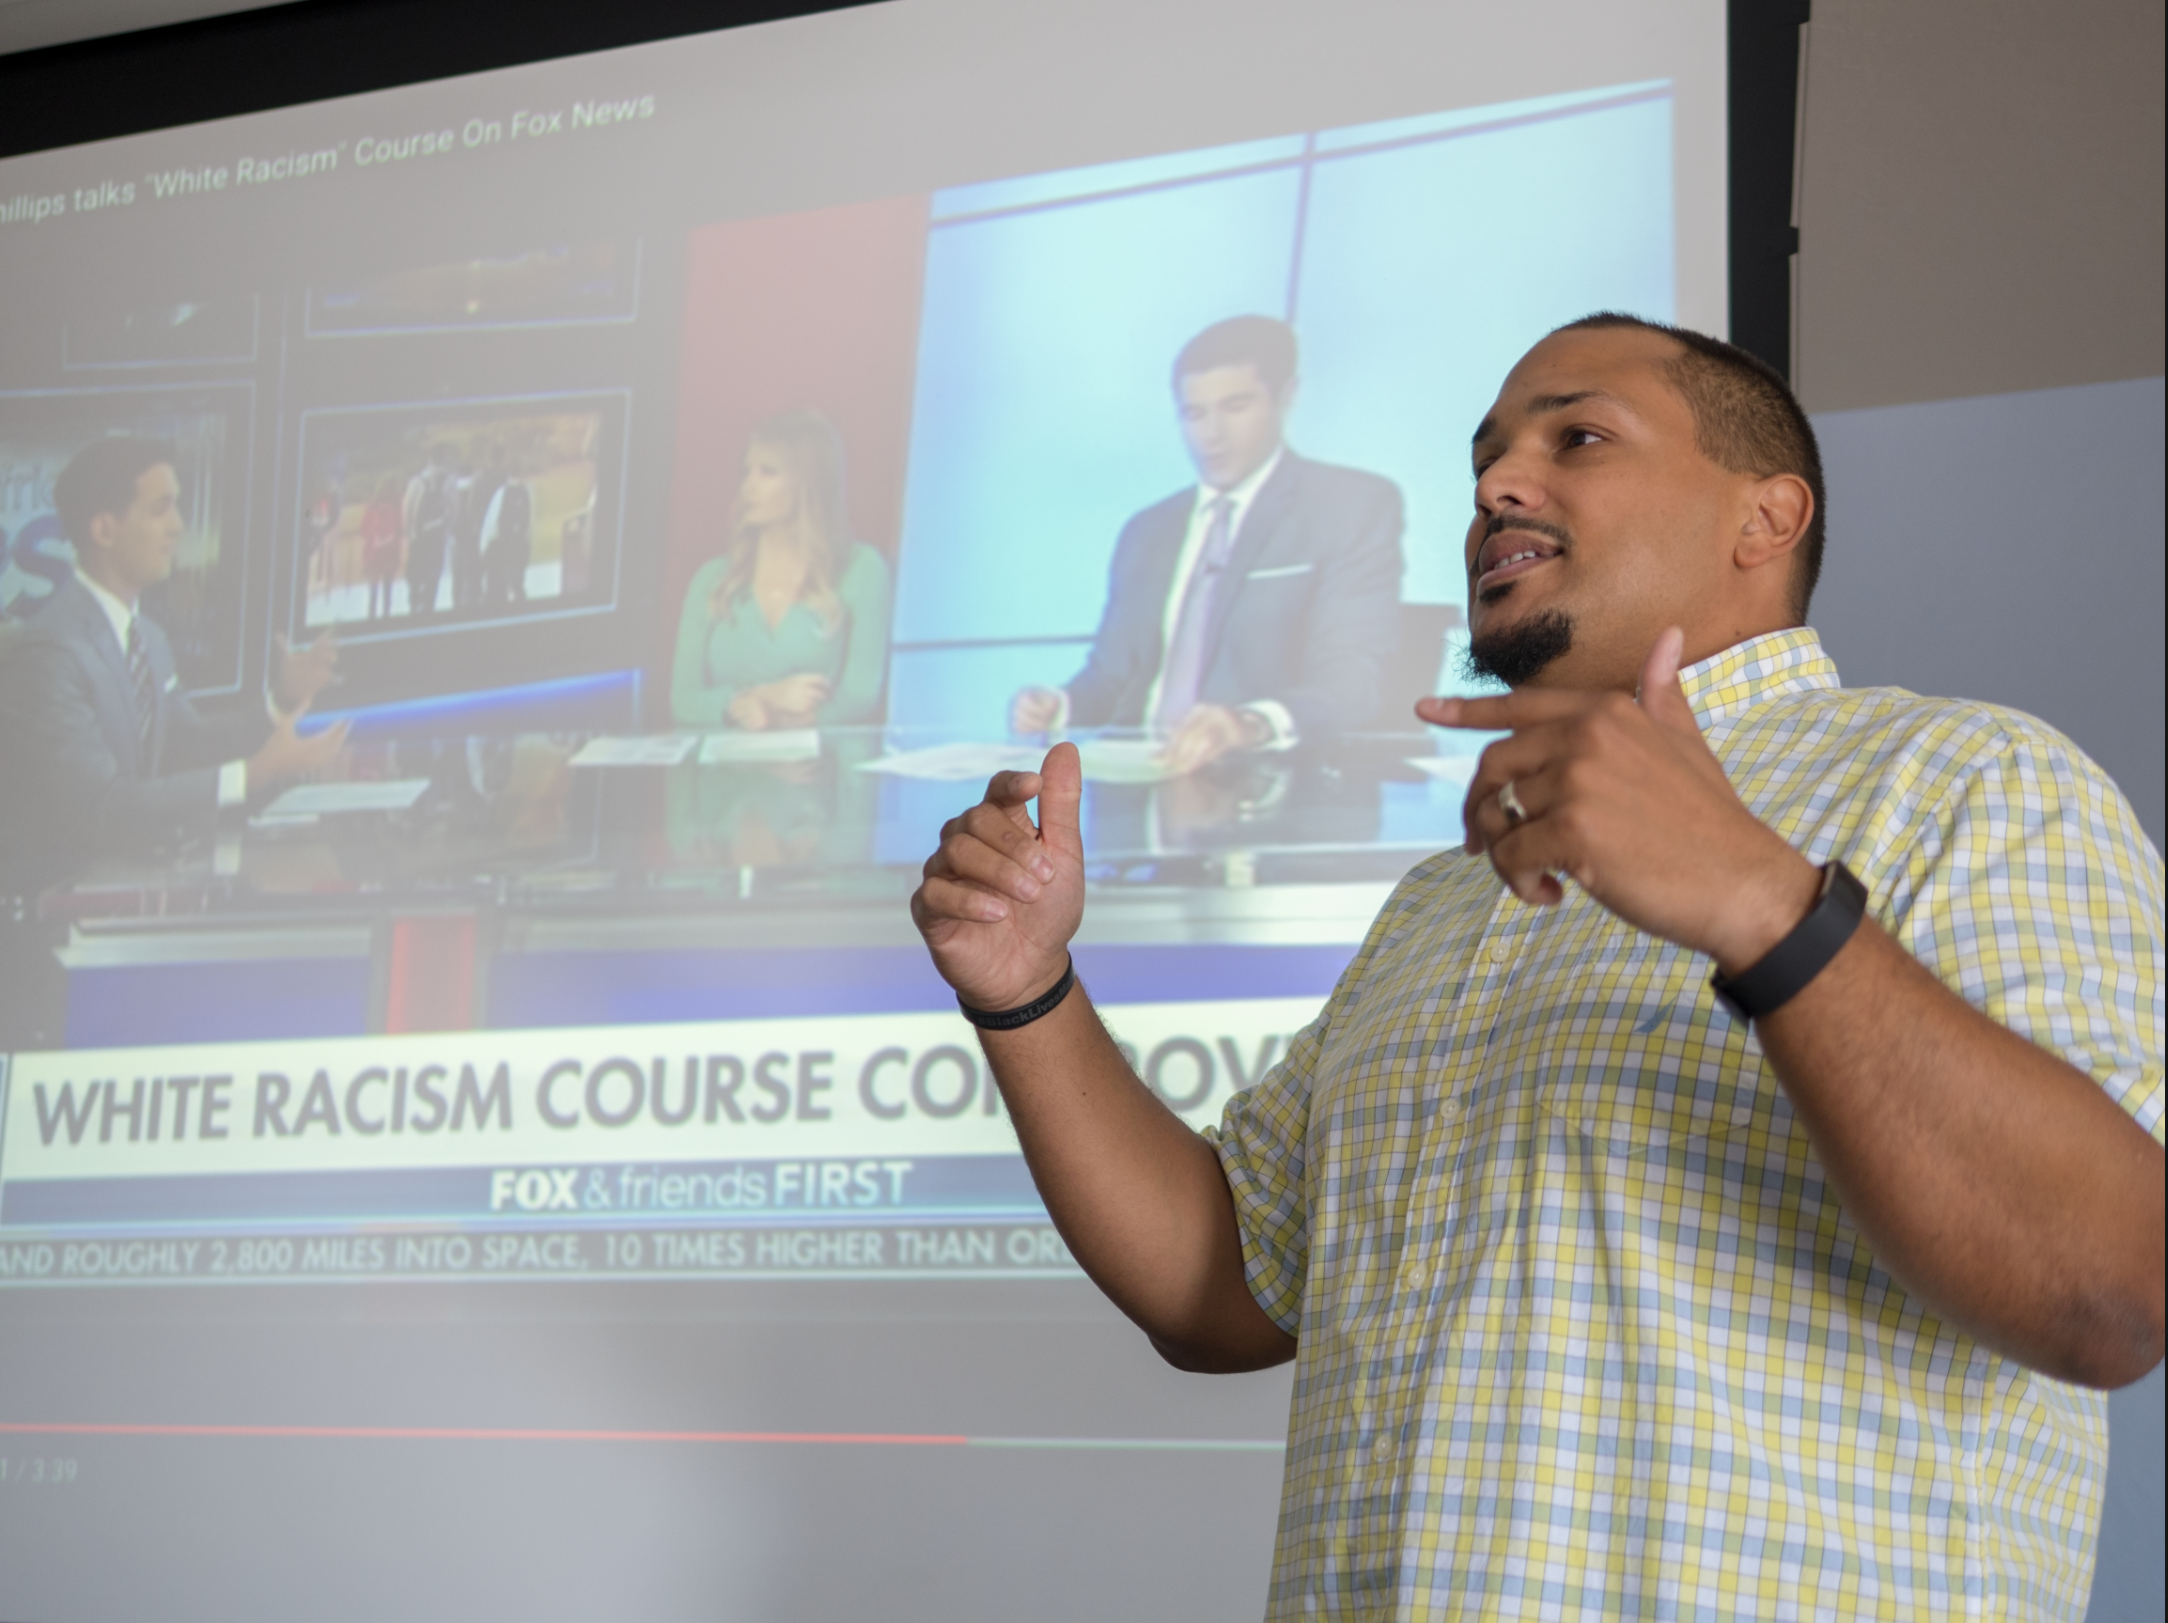 Ted Thornill teaches a class called white racism